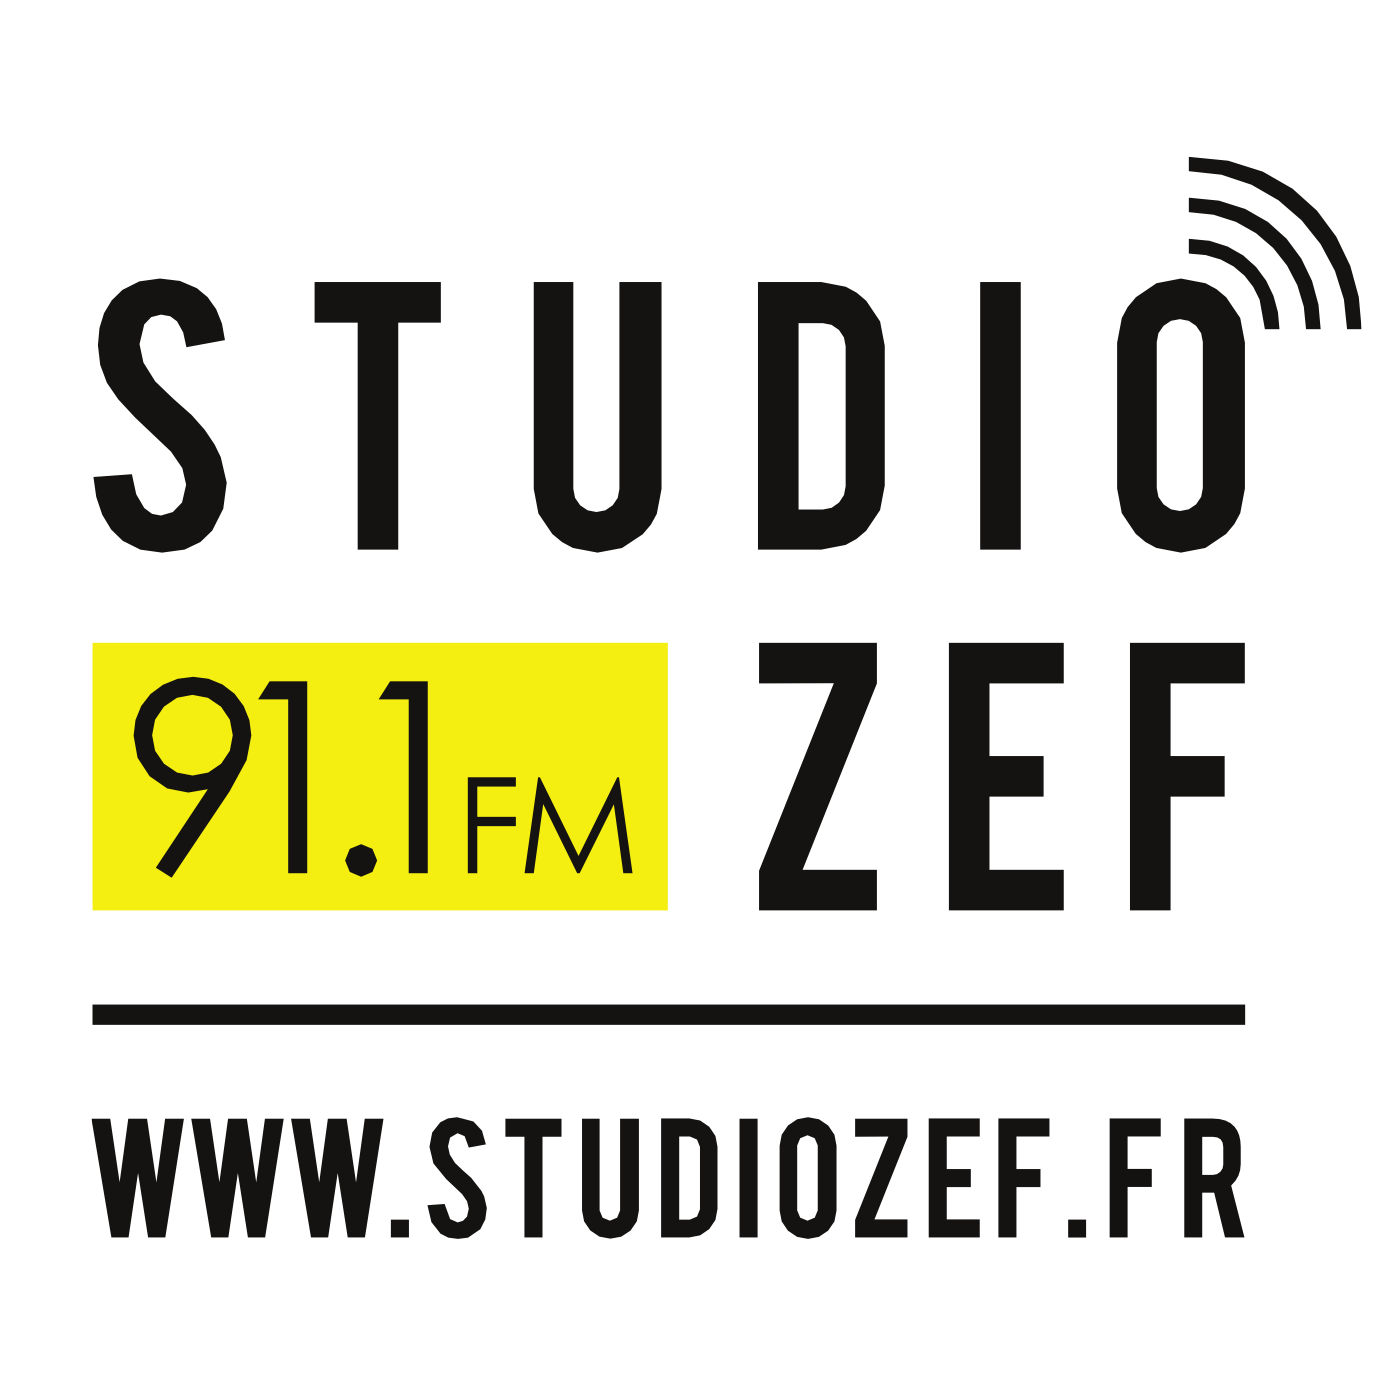 Courant d air! | Studio Zef